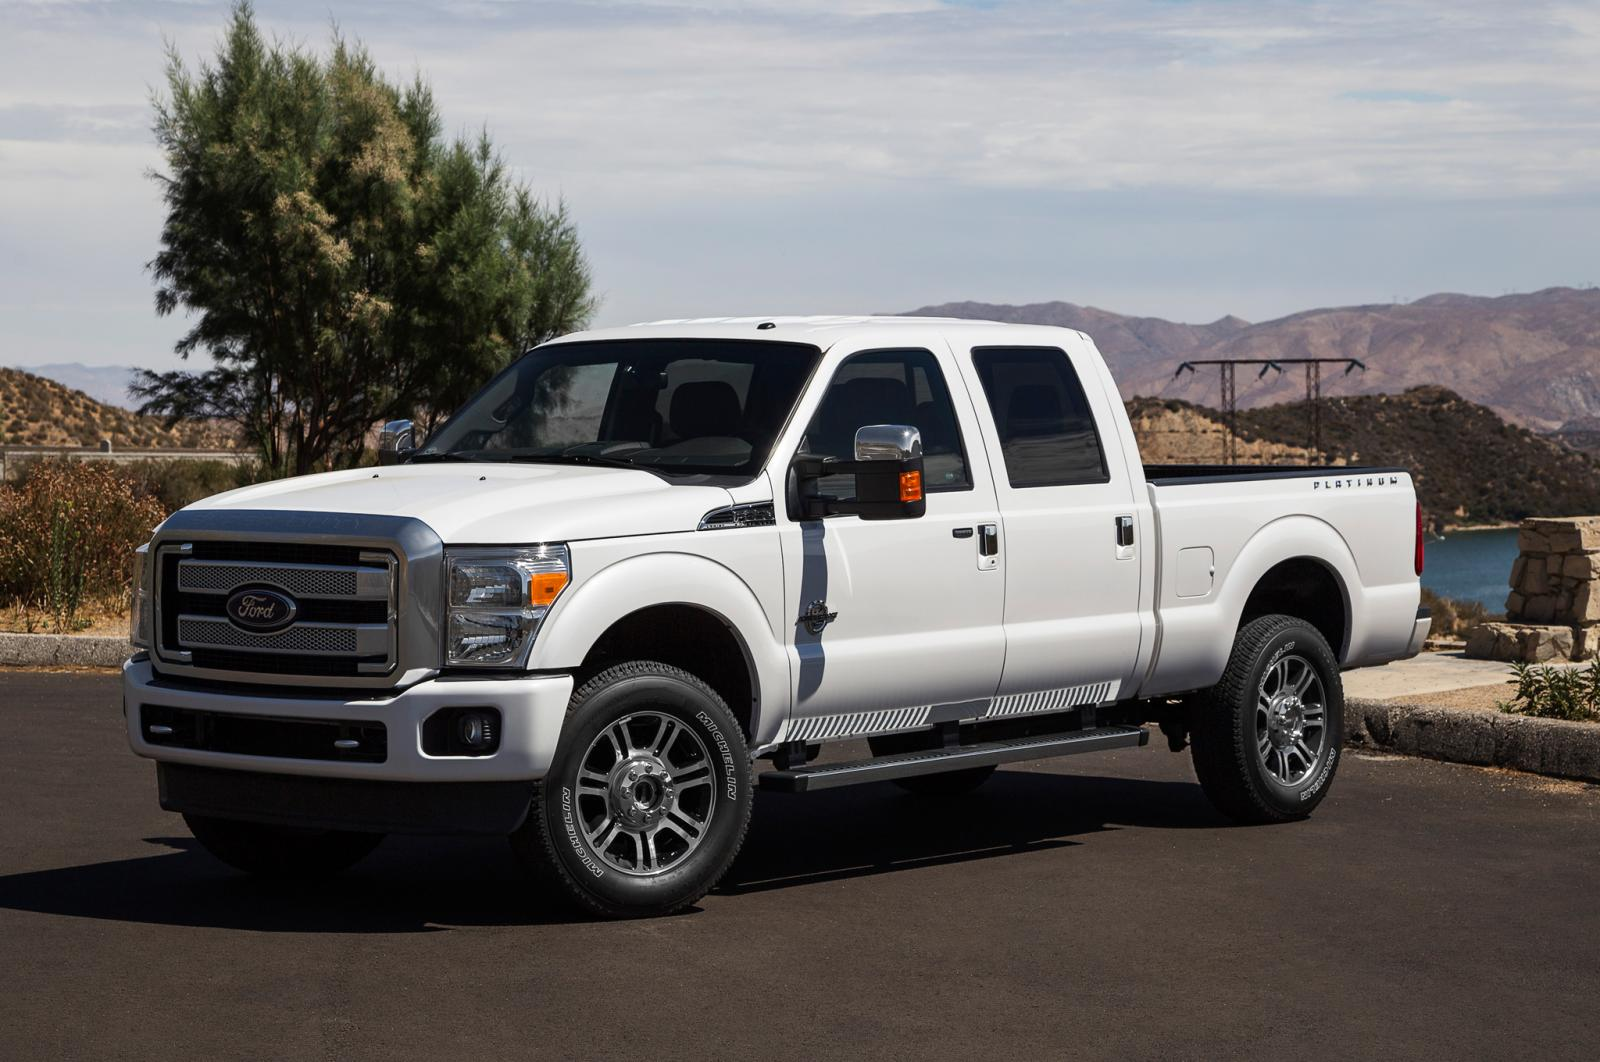 2013 ford f 350 super duty information and photos zombiedrive